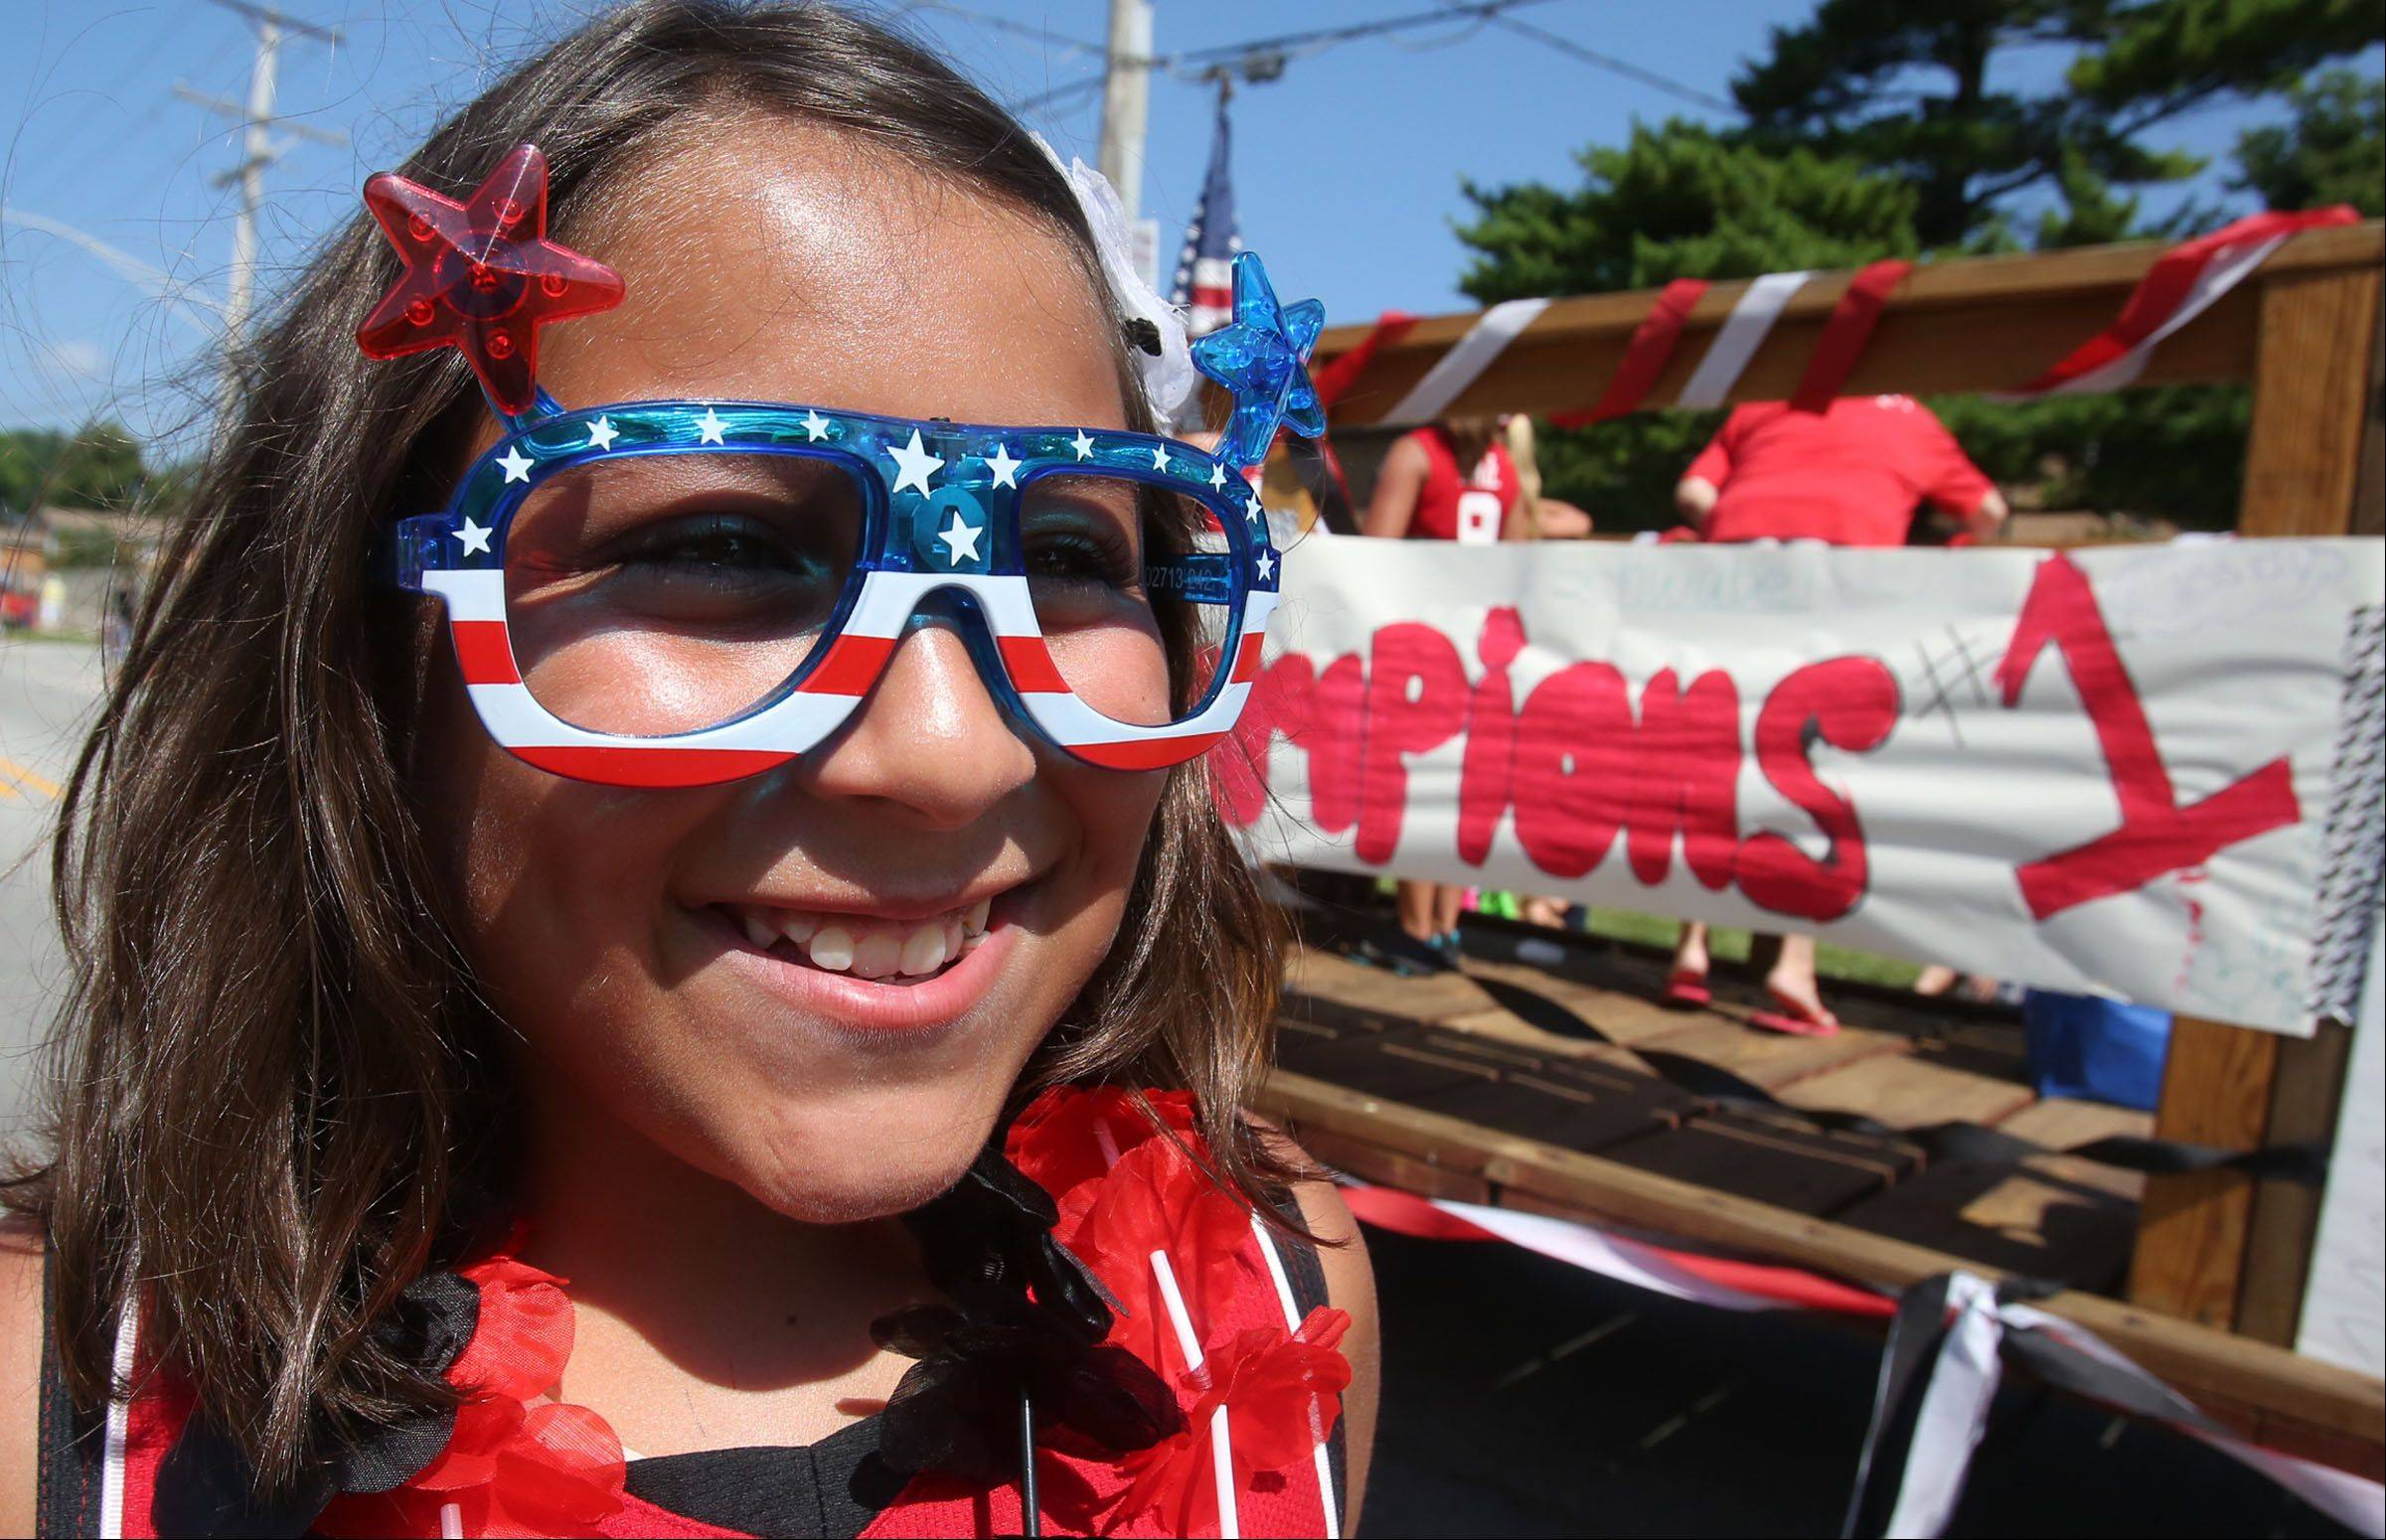 Lilliana Perez, 10, of Fox Lake, runs along side the Grant softball float in Celebrate Fox Lake parade Saturday.